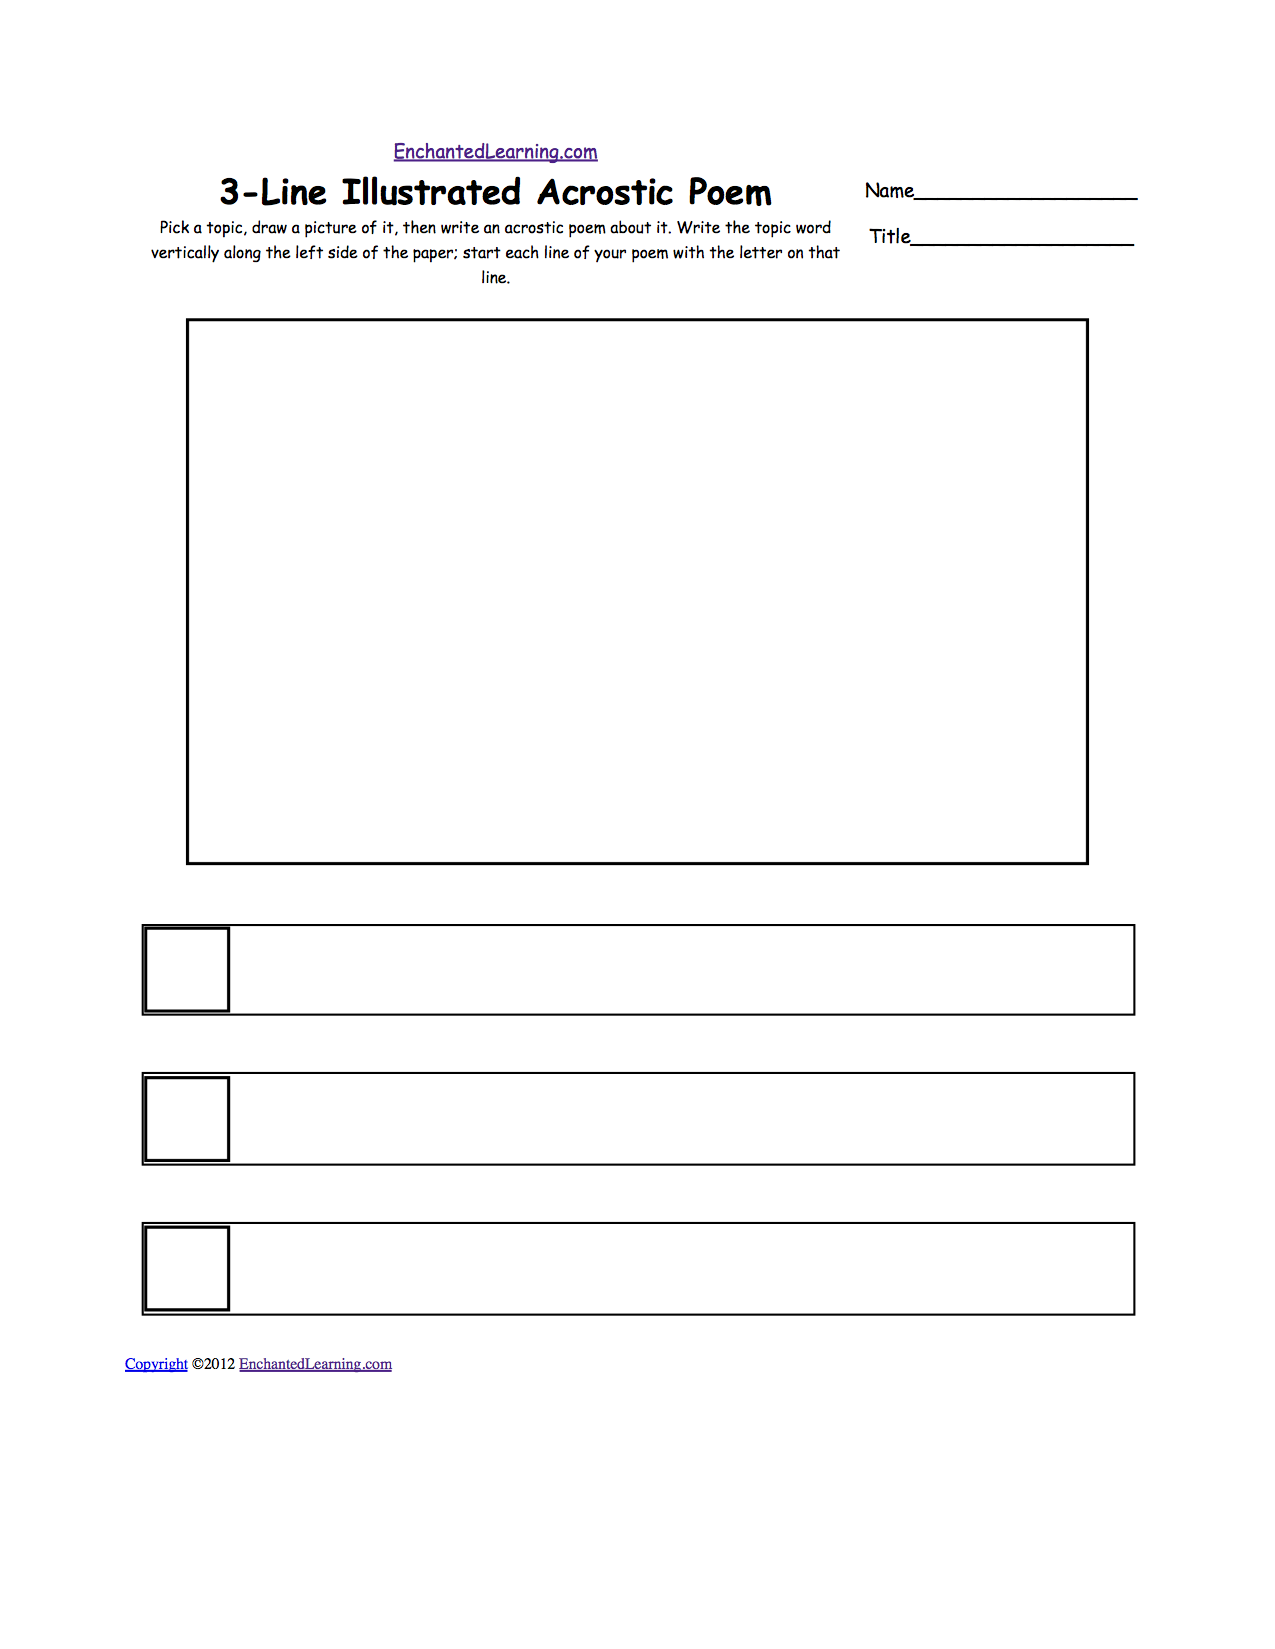 Blank Illustrated Acrostic Poem Worksheets: Worksheet Printout ...